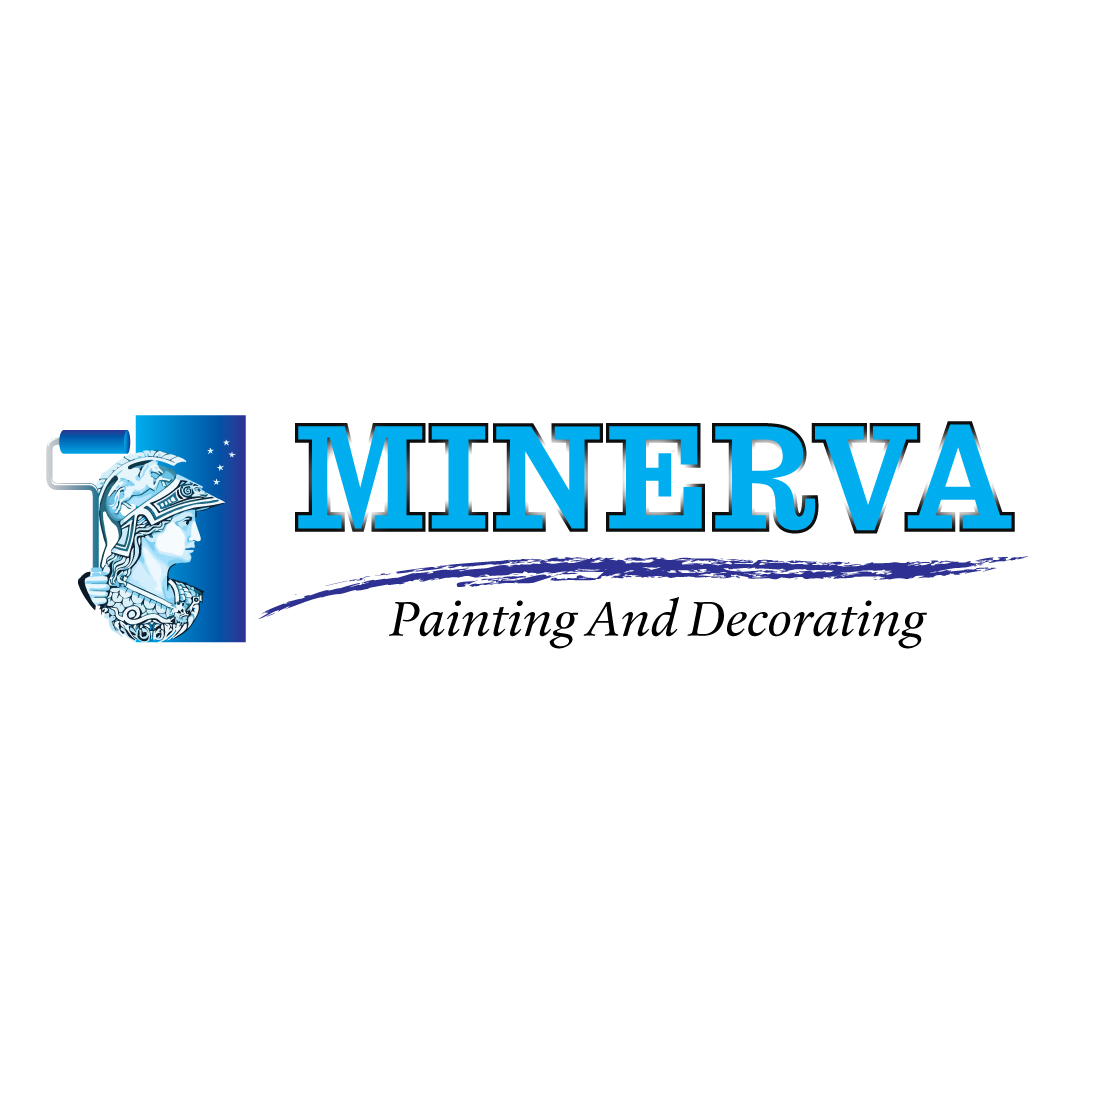 Logo Design by Dan Cristian - Entry No. 63 in the Logo Design Contest New Logo Design for Minerva Painting & Decorating Ltd..